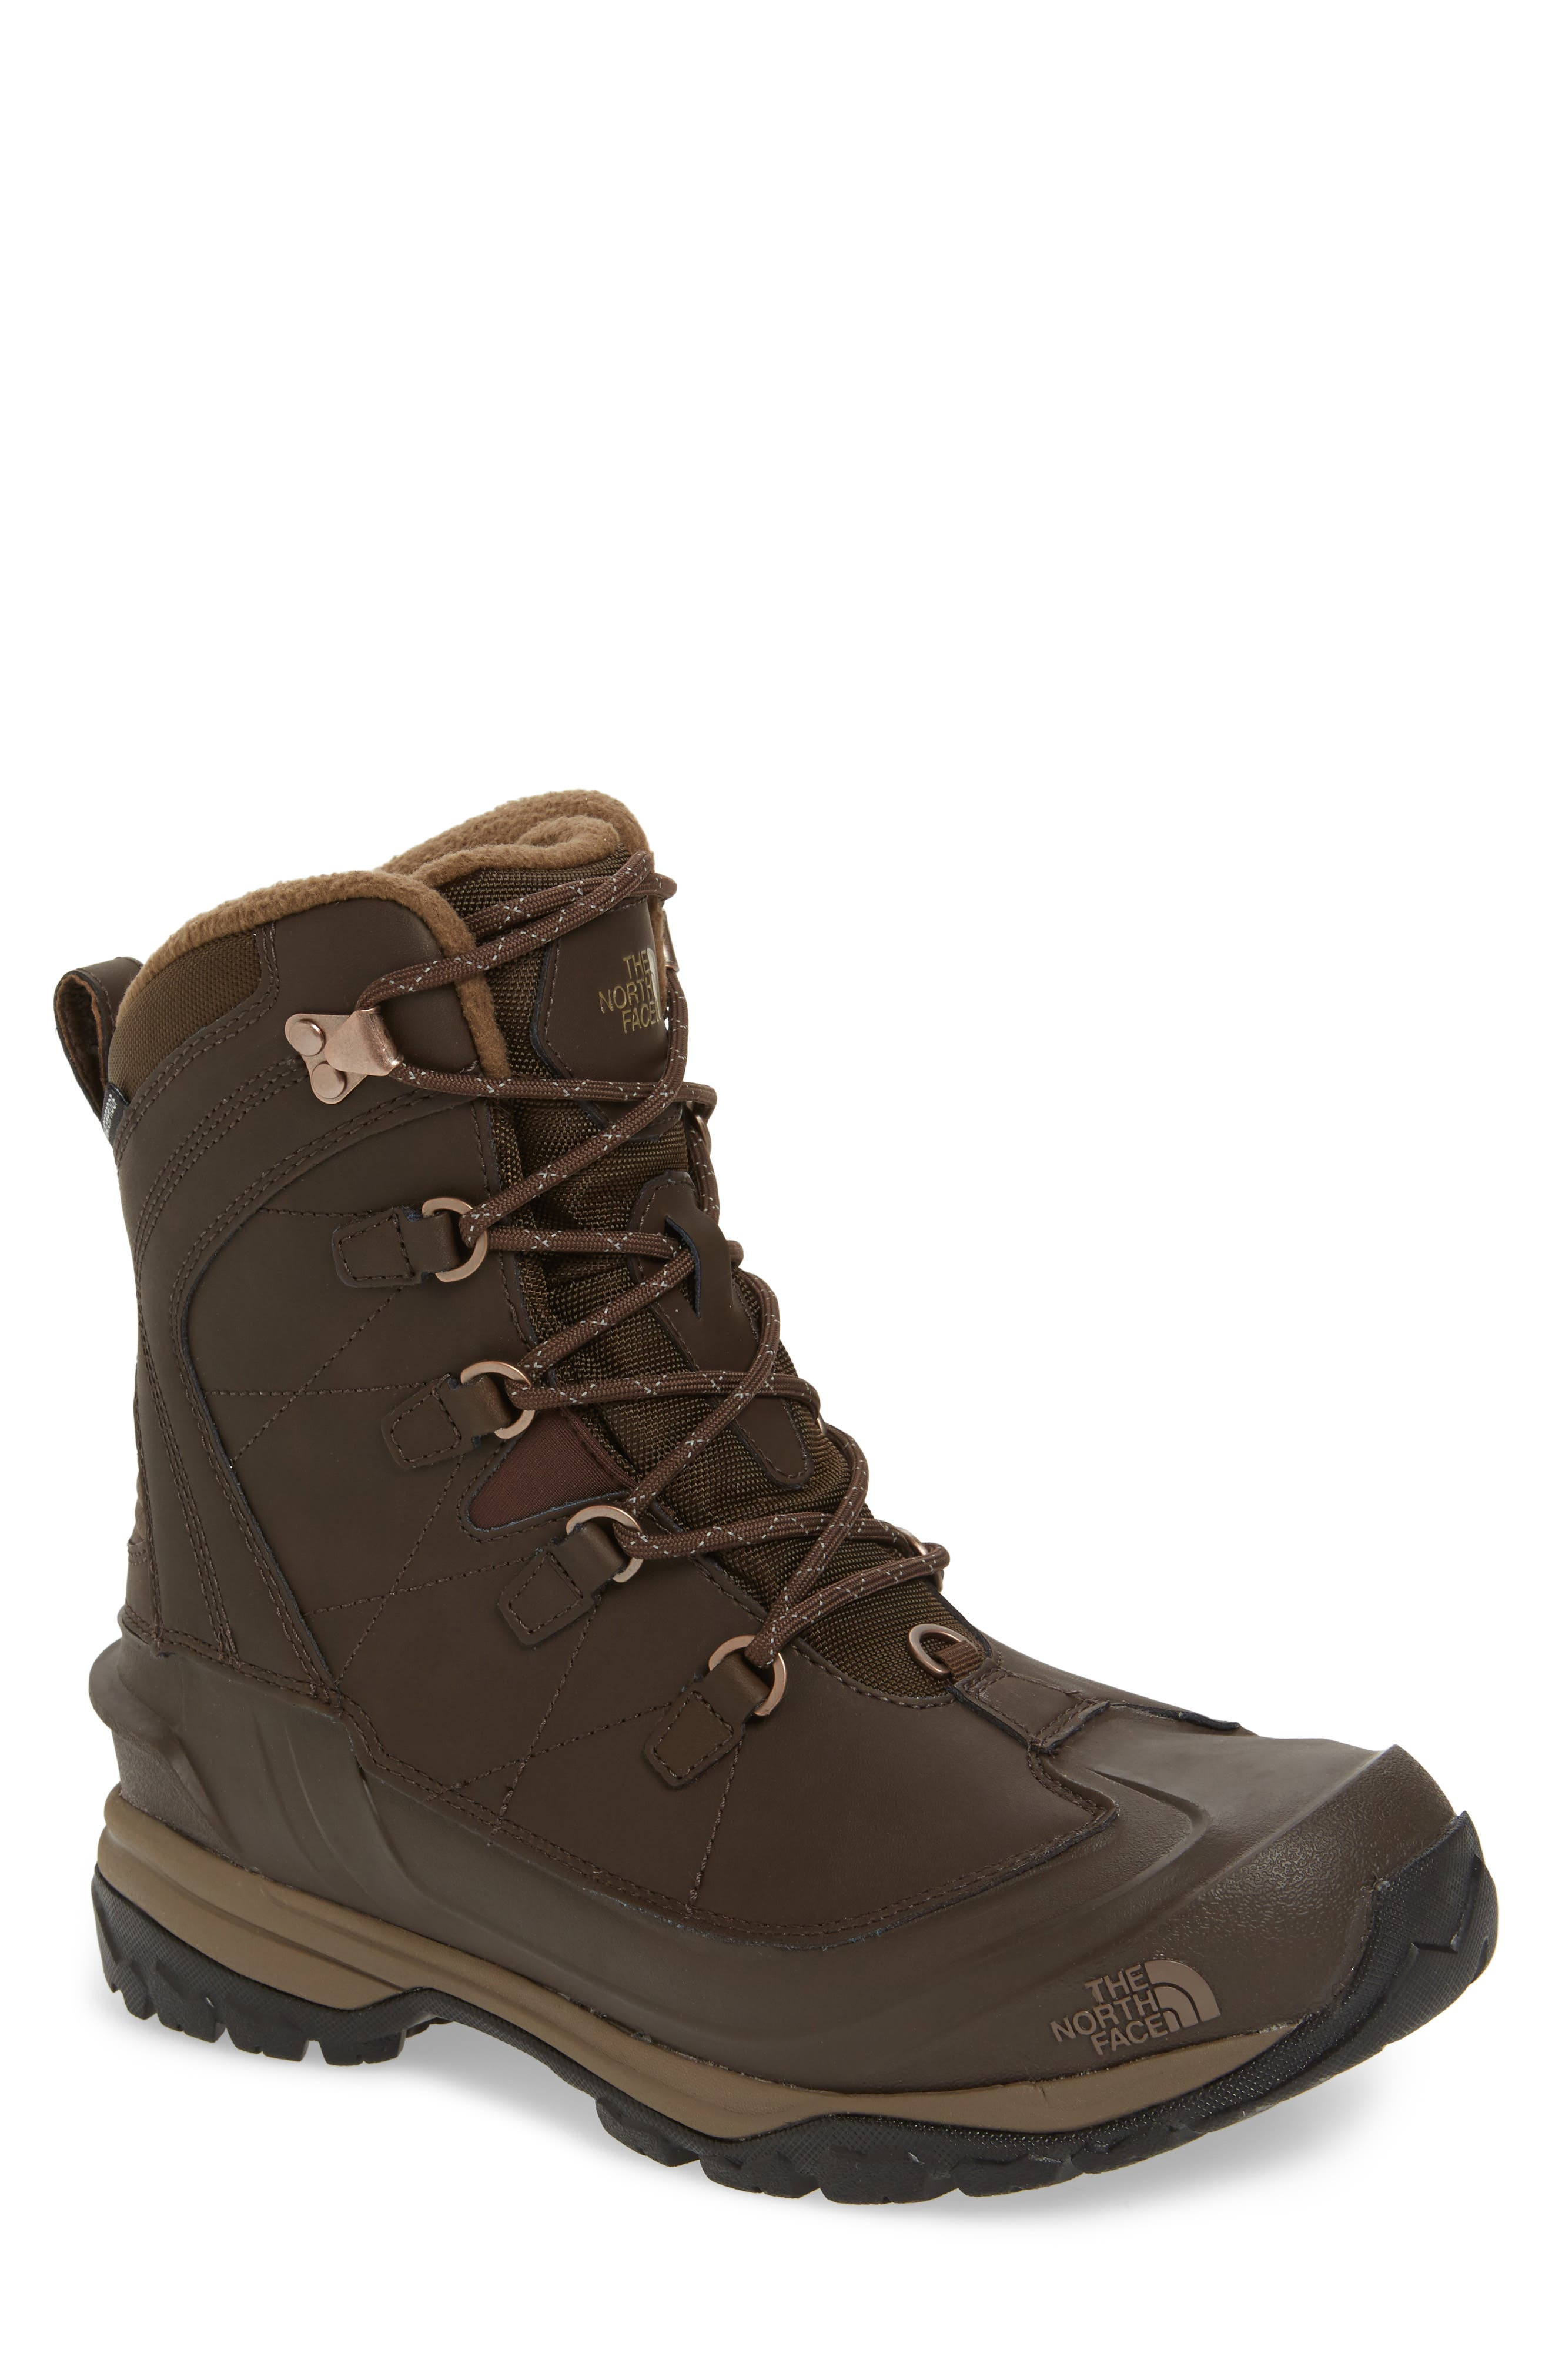 The North Face Chilkat Evo Waterproof Insulated Snow Boot (Men)